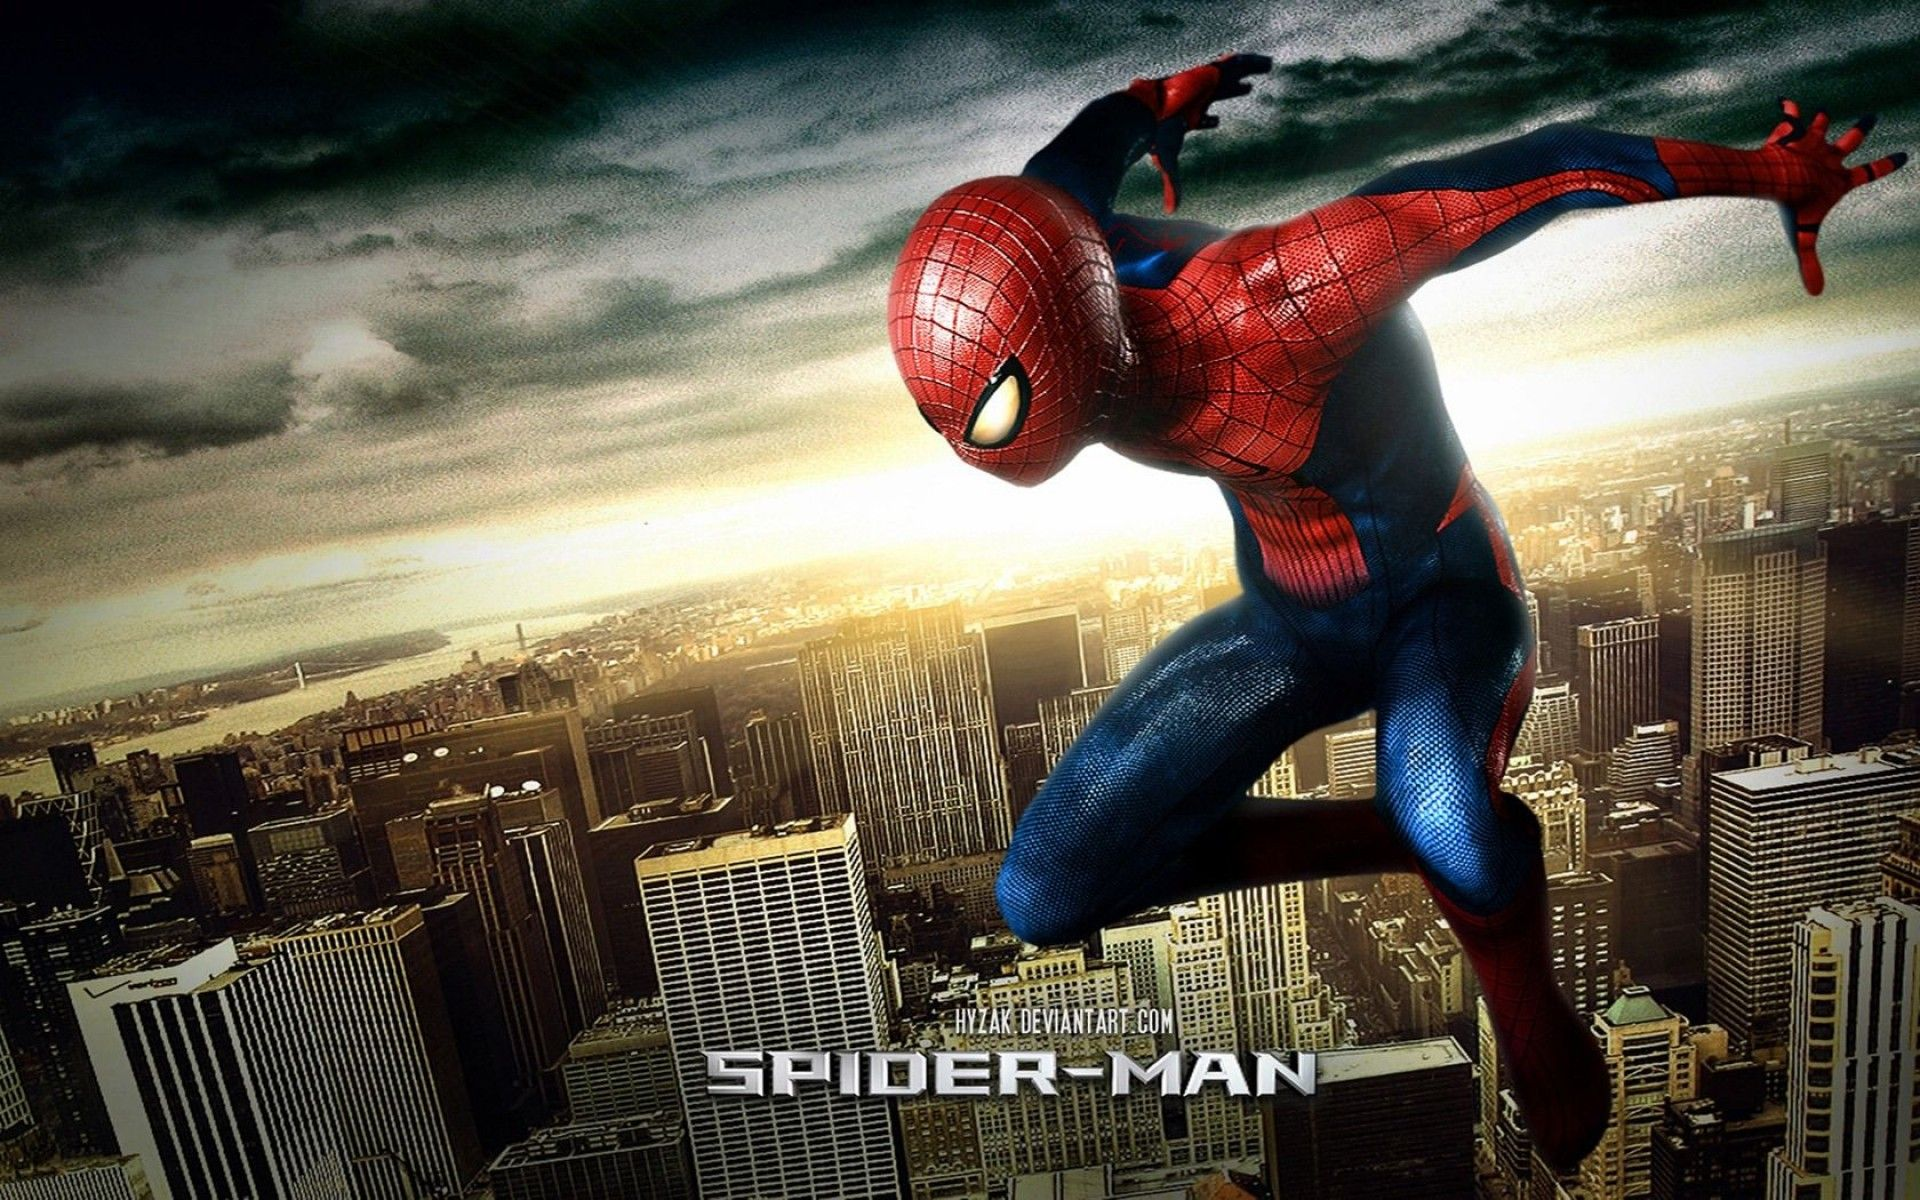 Max Dillon Electro The Amazing Spiderman Wallpaper Free Desktop 1920 1080 The Amazing Spider Man 2 Wallpapers 44 Amazing Spiderman Spiderman Spiderman Movie